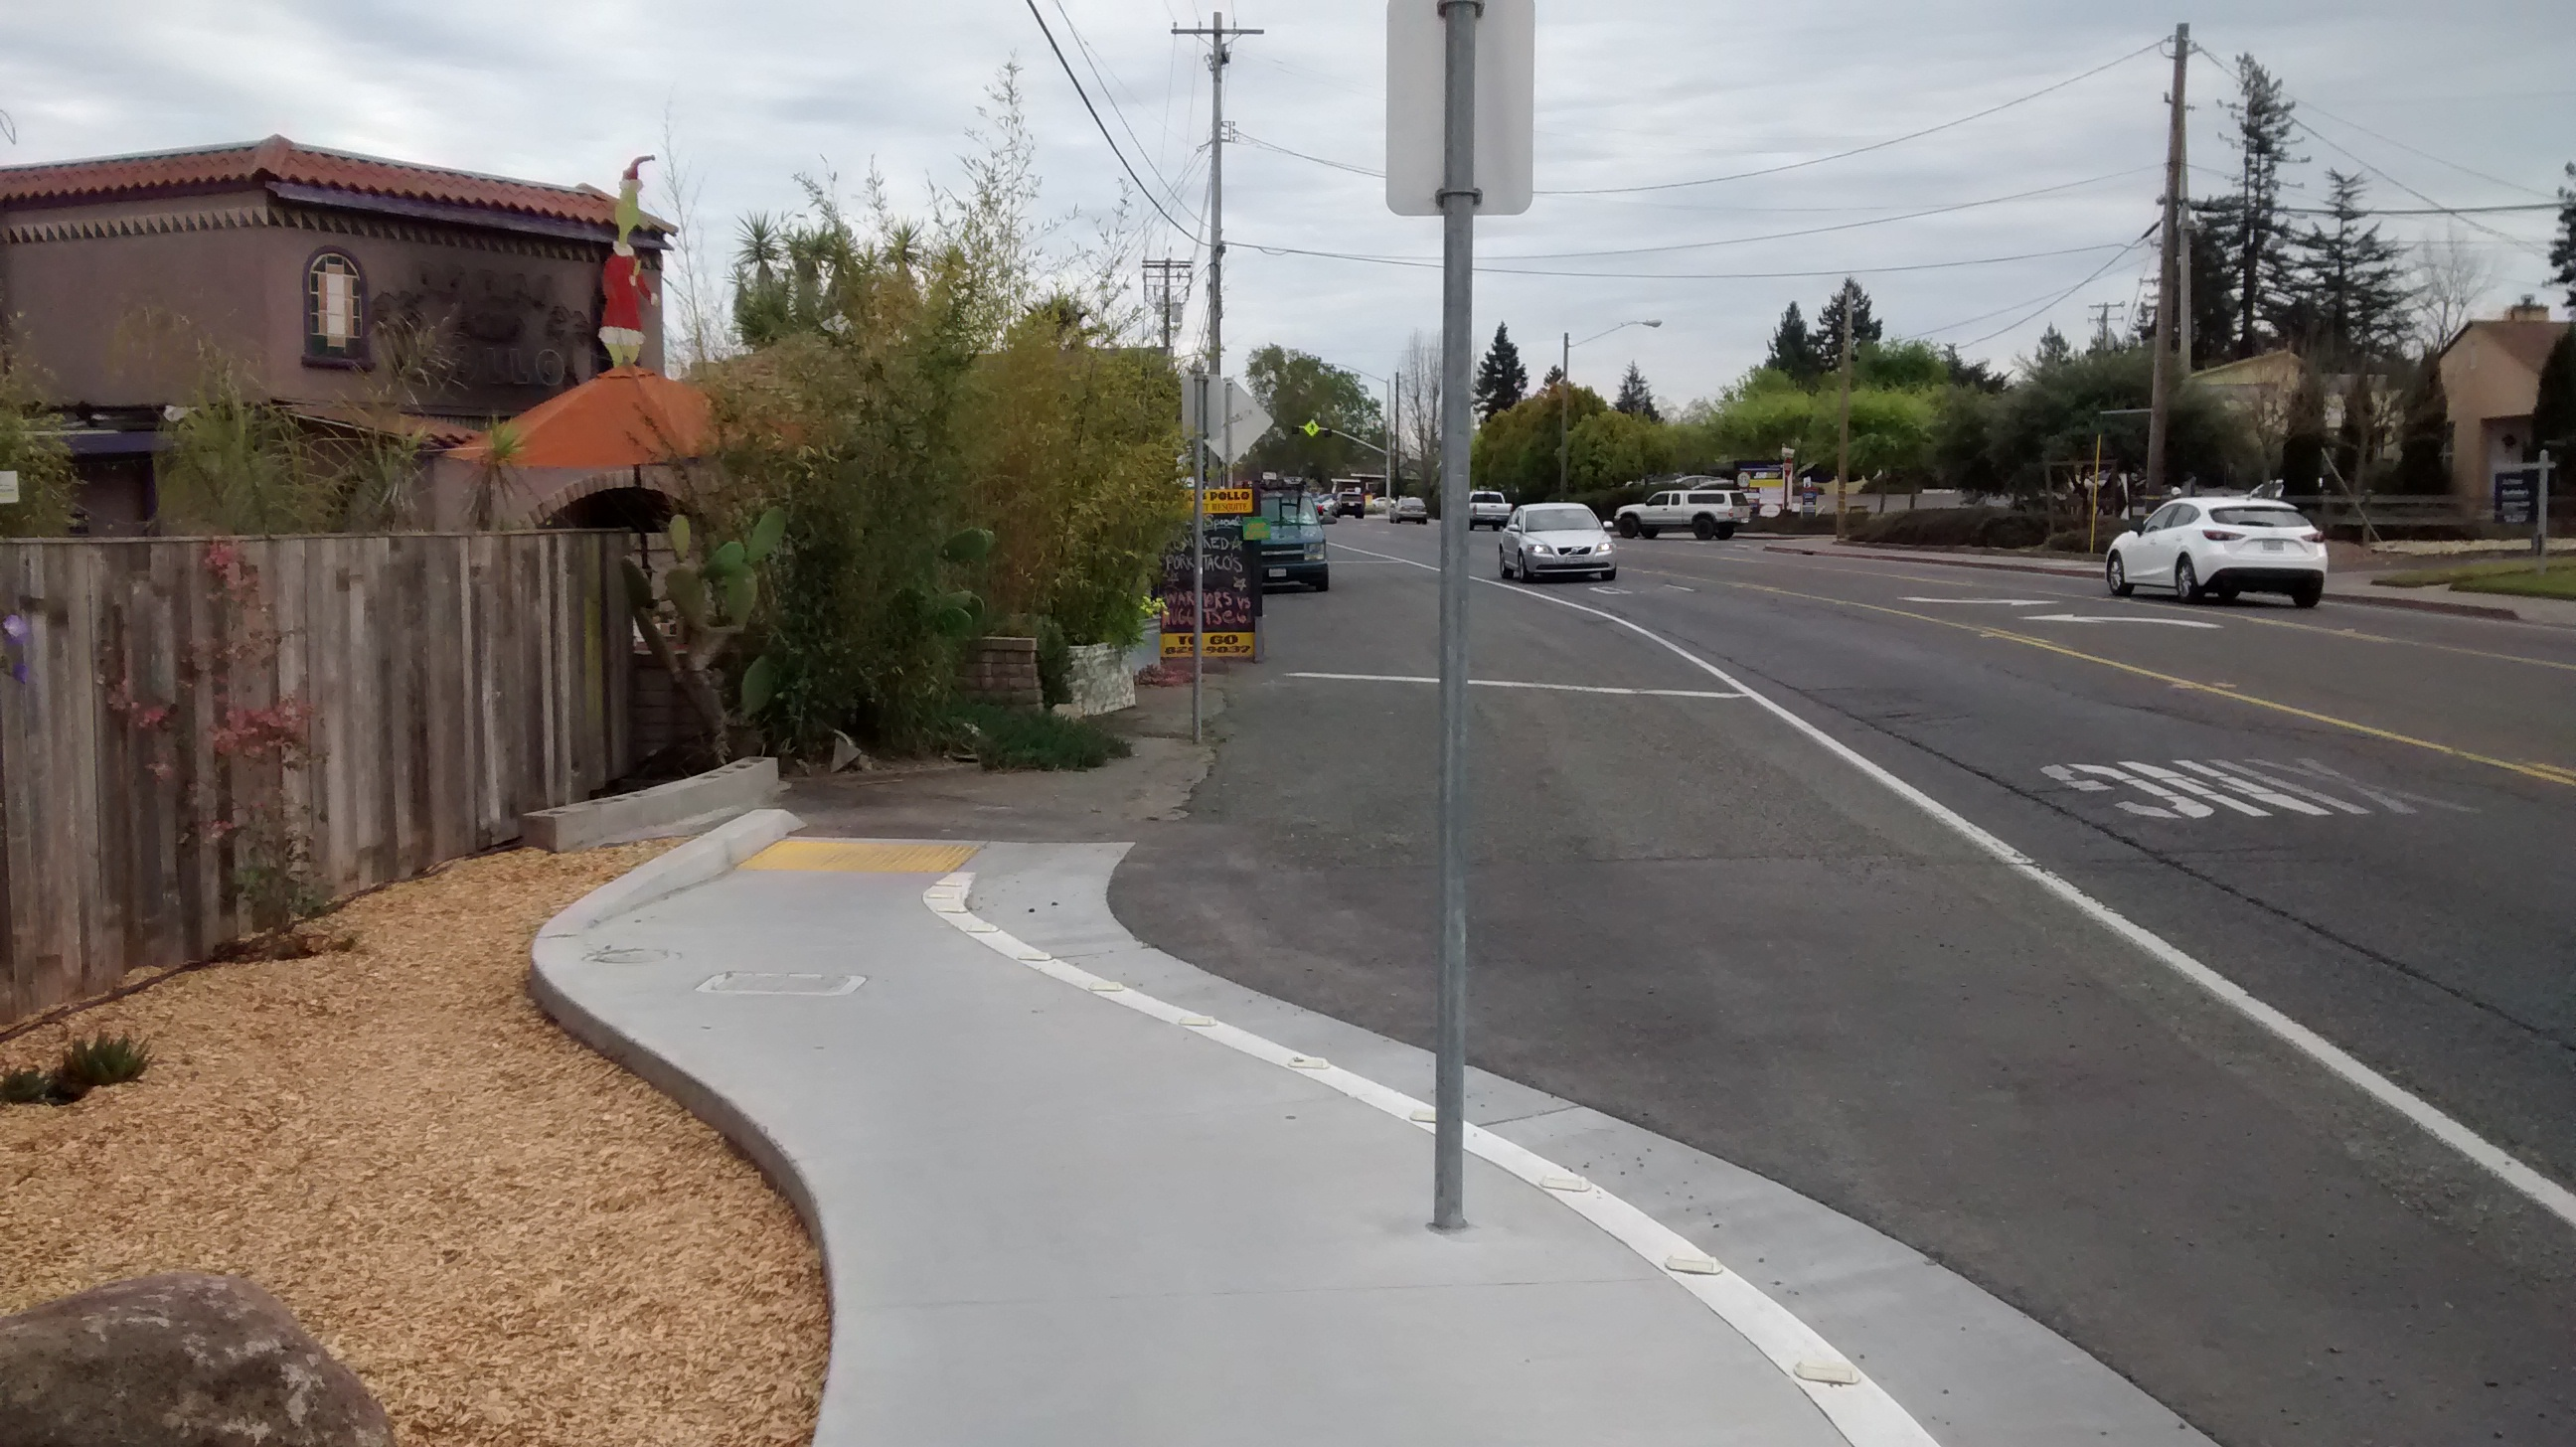 One of the stretches of 'missing' sidewalk on Gravenstein Hwy South